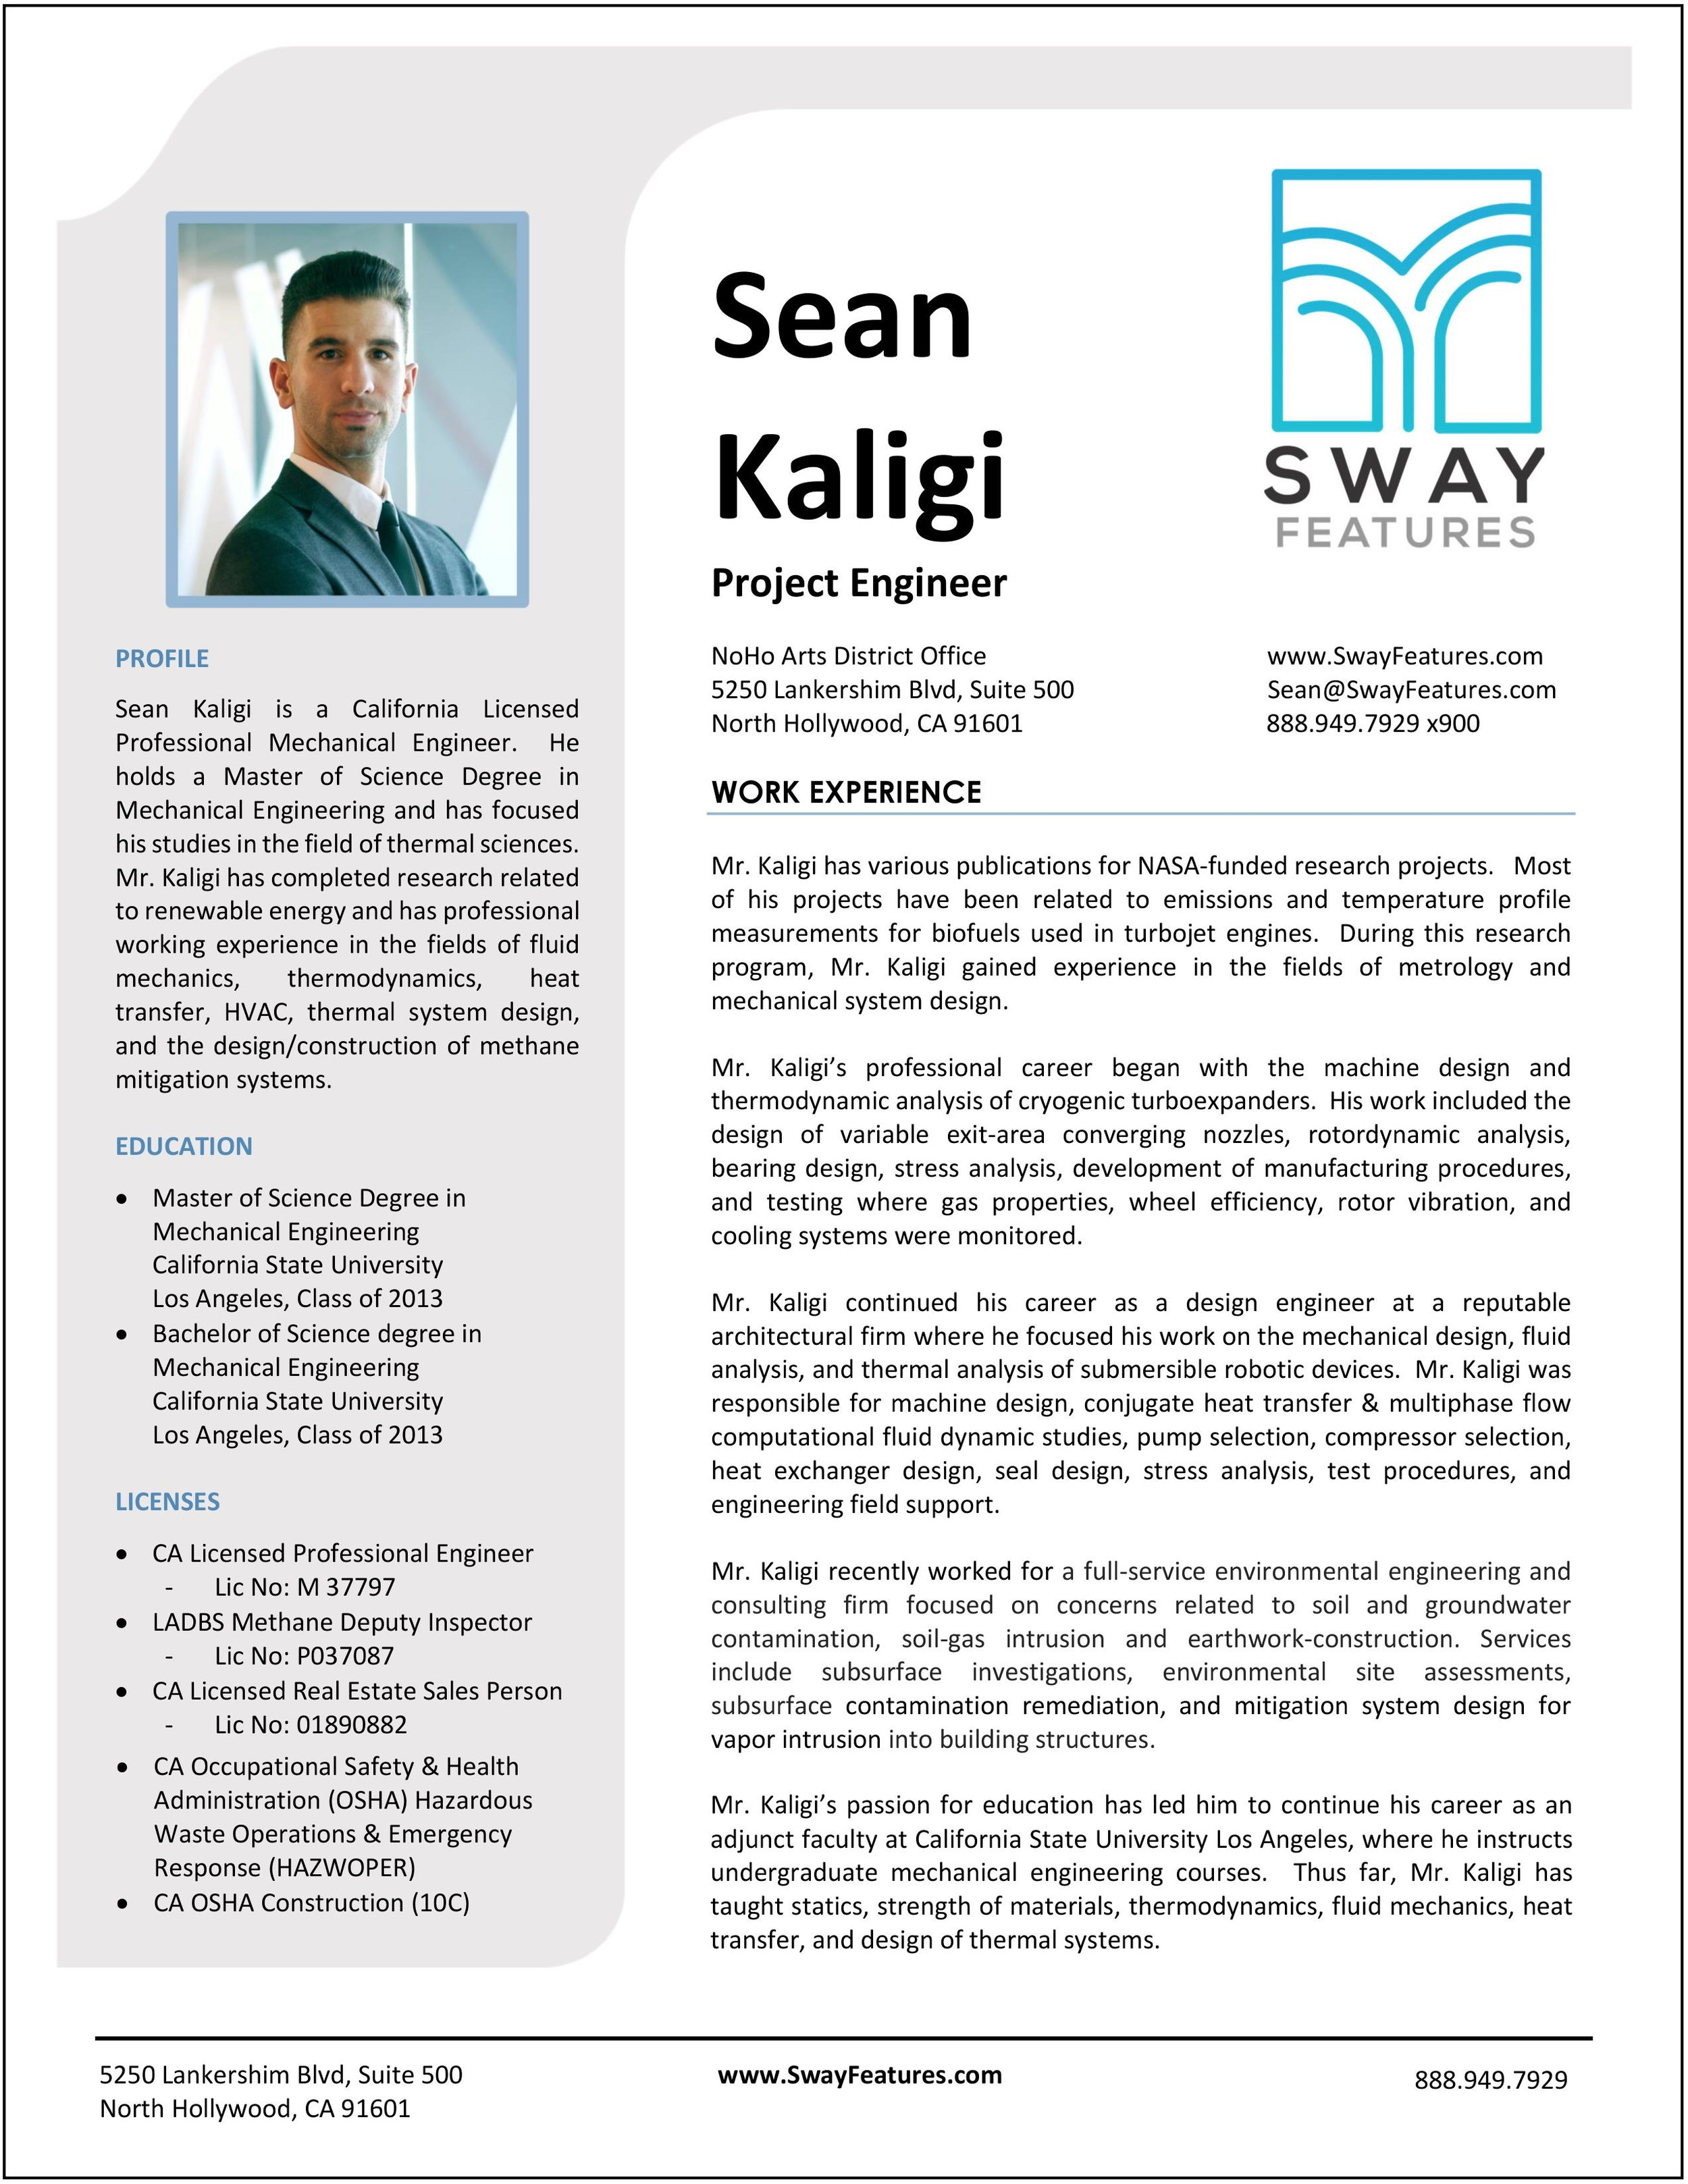 Sean Kaligi Resume.jpg